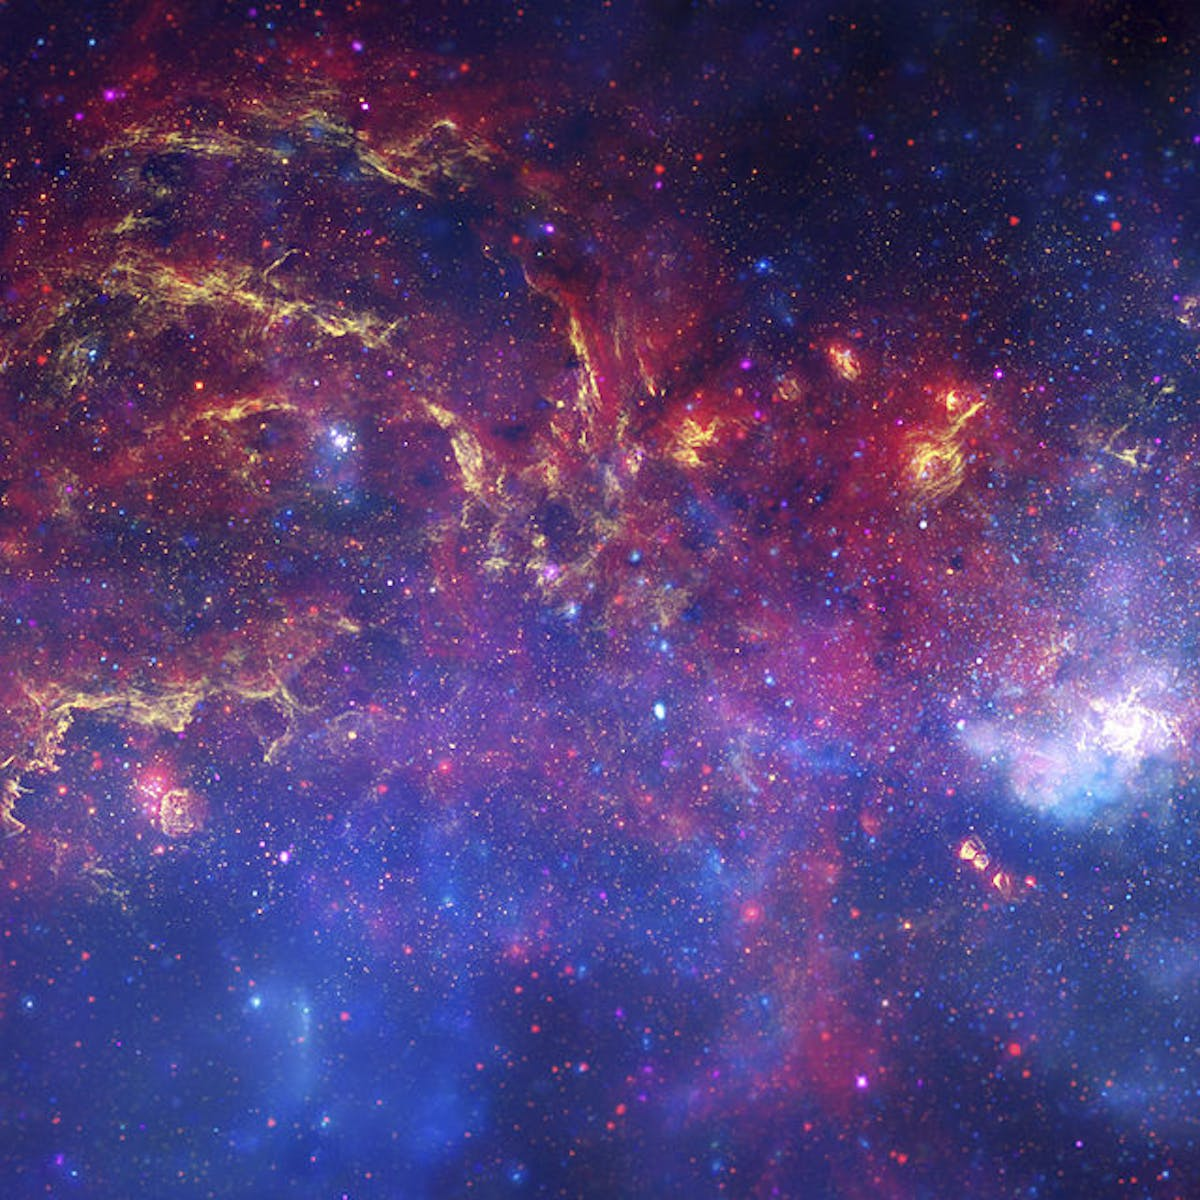 When and how did stars form in the Milky Way?